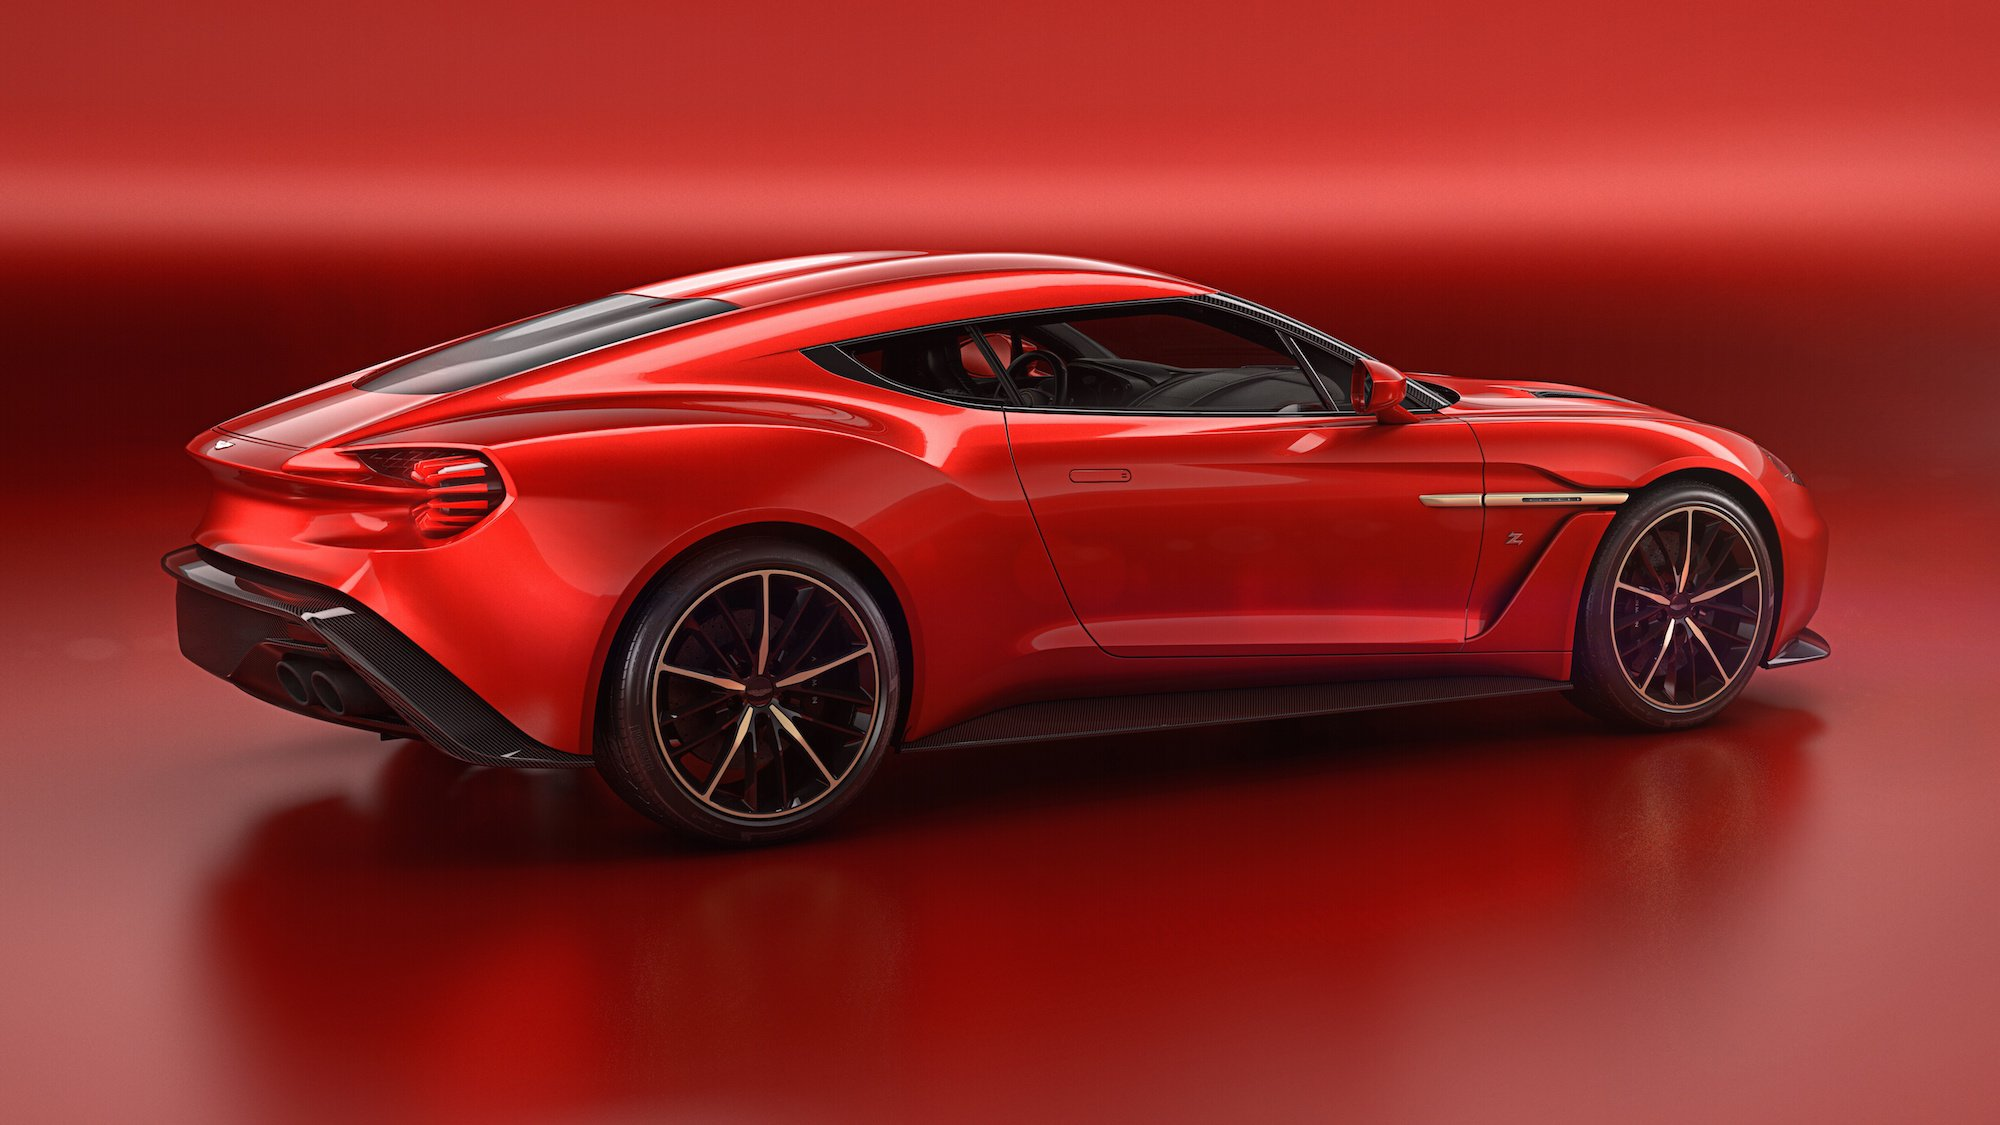 Aston Martin Vanquish Zagato Backgrounds